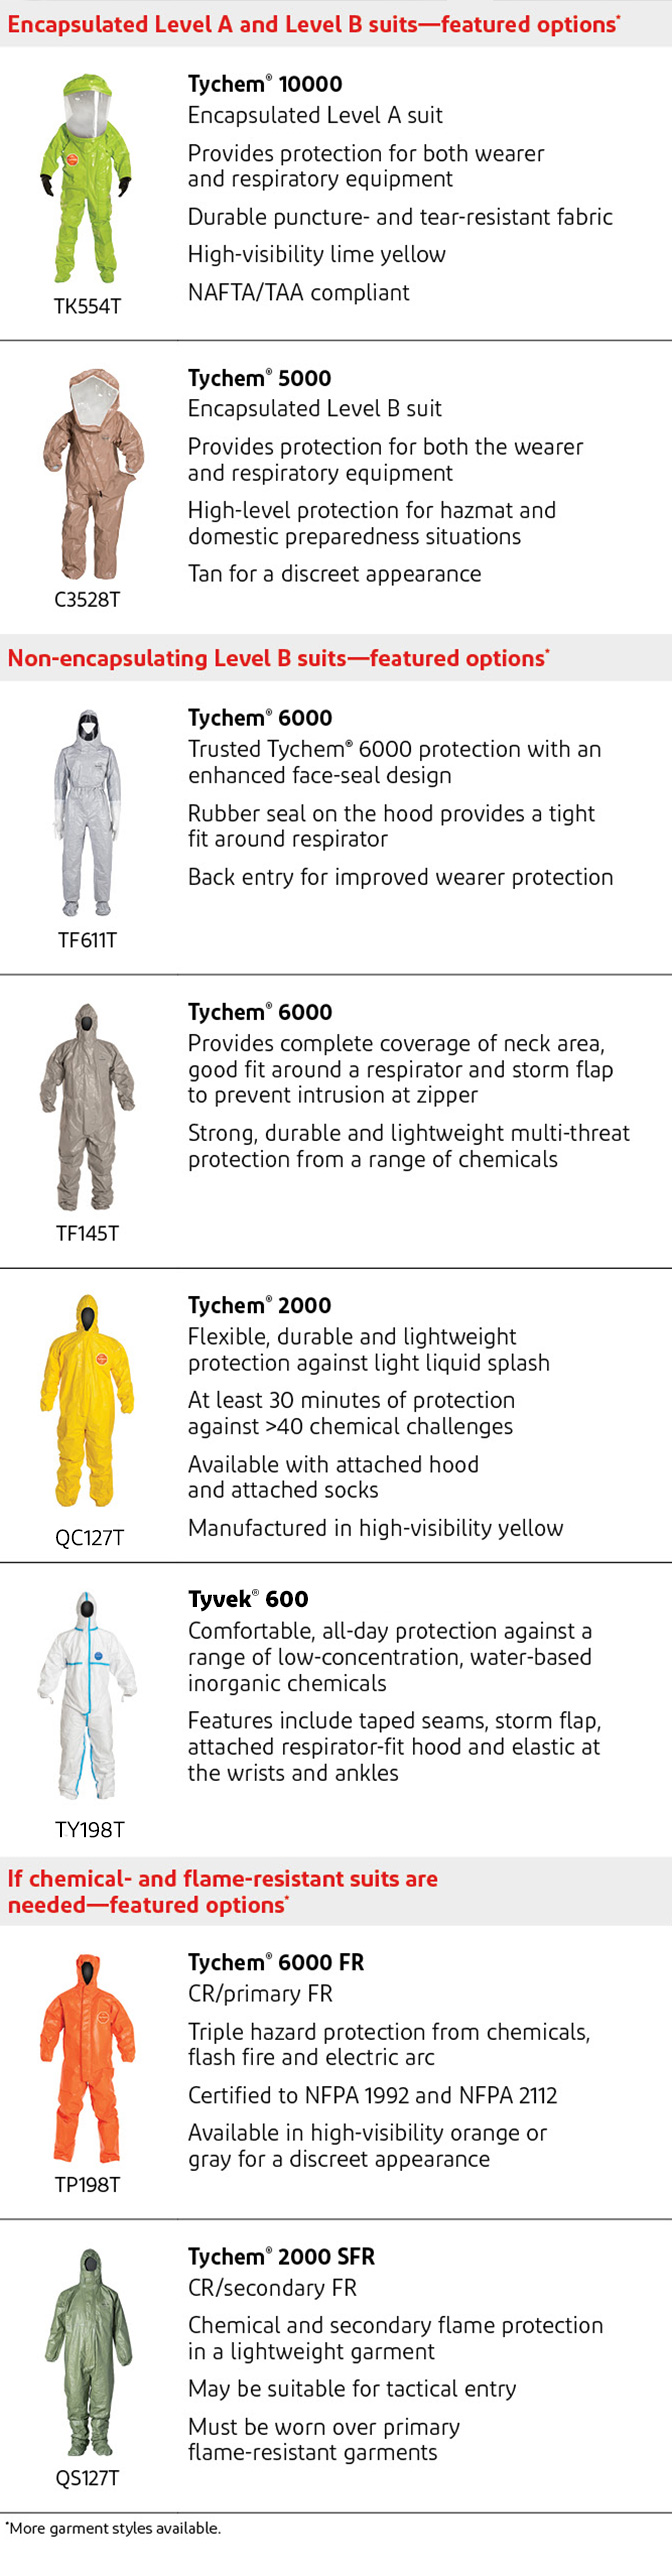 List of DuPont PPE for protection against fetanyl & other opioids